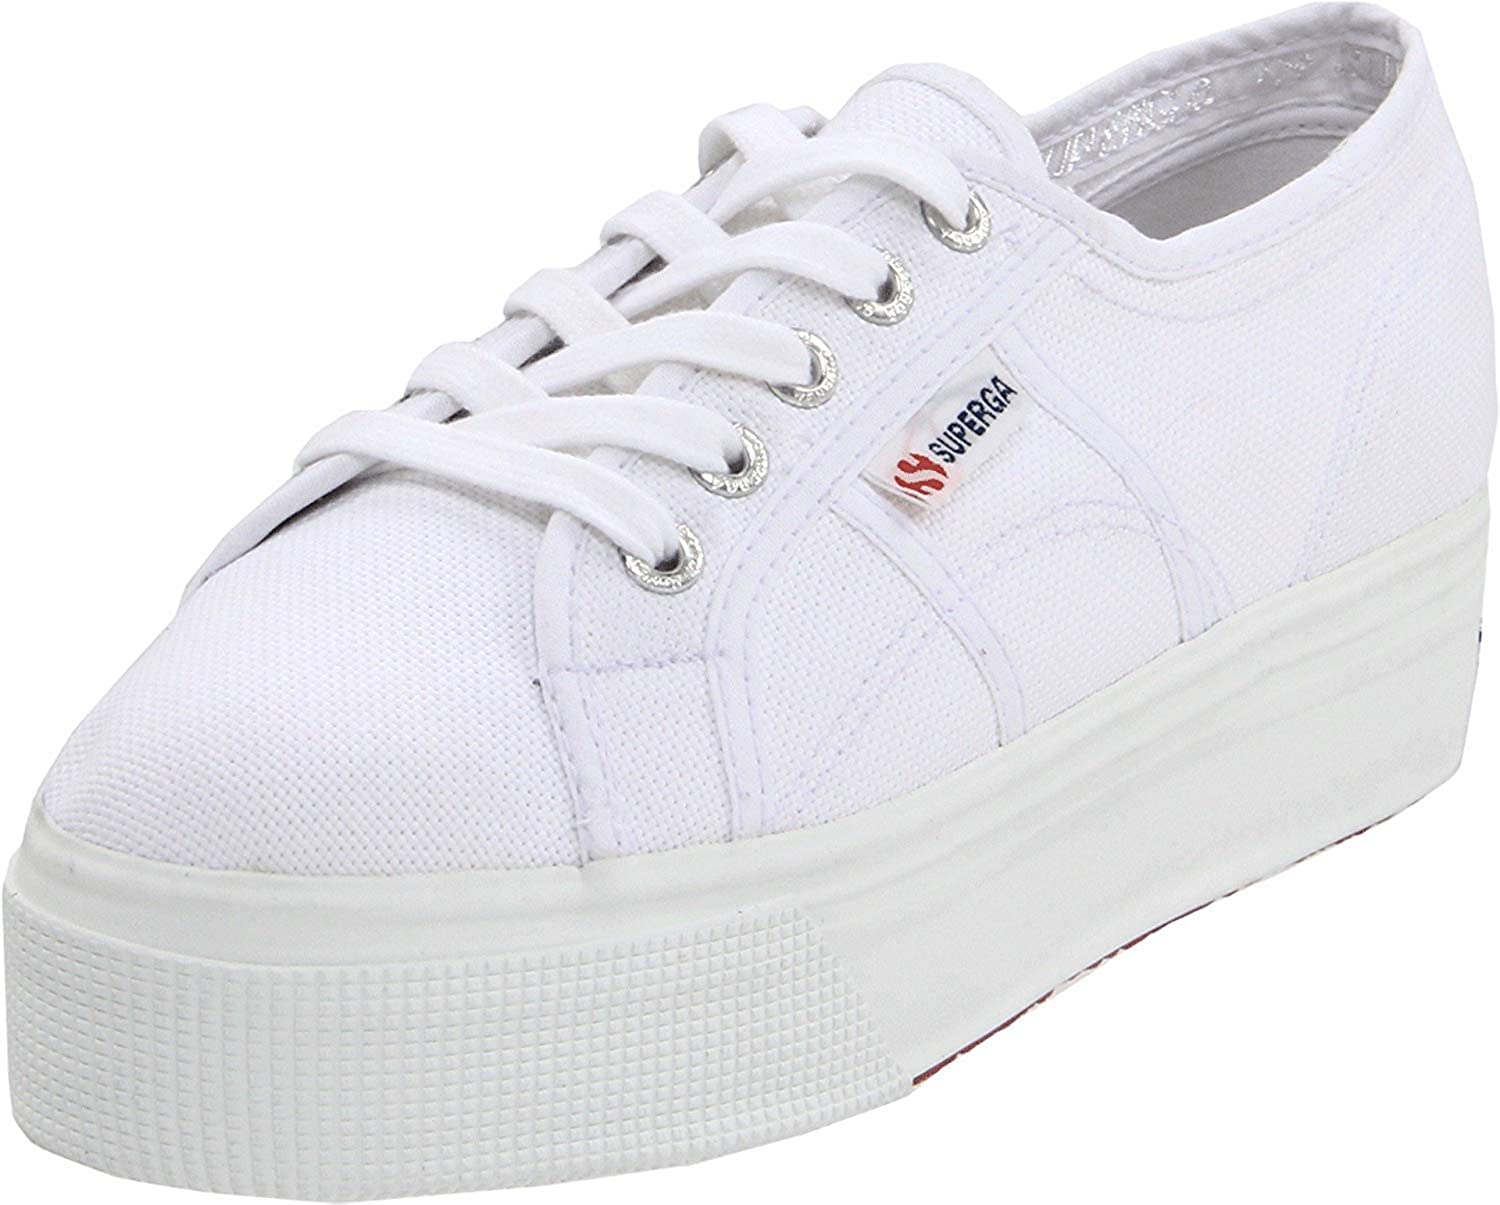 Amazon.com: Superga Womens 2790 Acotw Fashion Sneaker ...